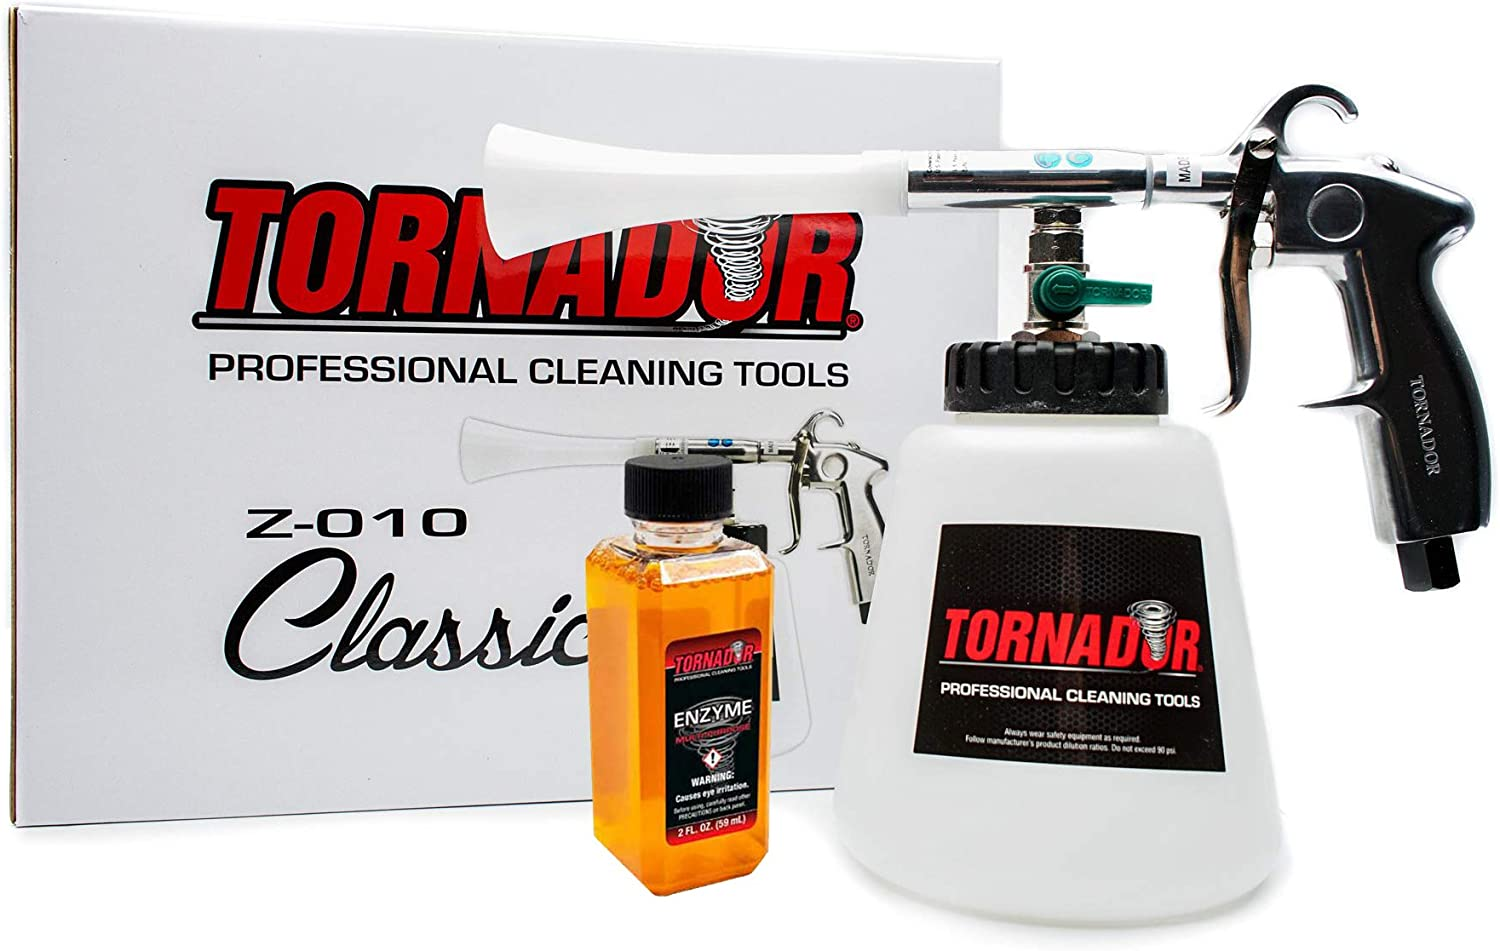 Colorado Springs Mall Tornador Z-010 Cleaning Gun Starter Enzyme Over item handling Cleaner Kit 2oz. with